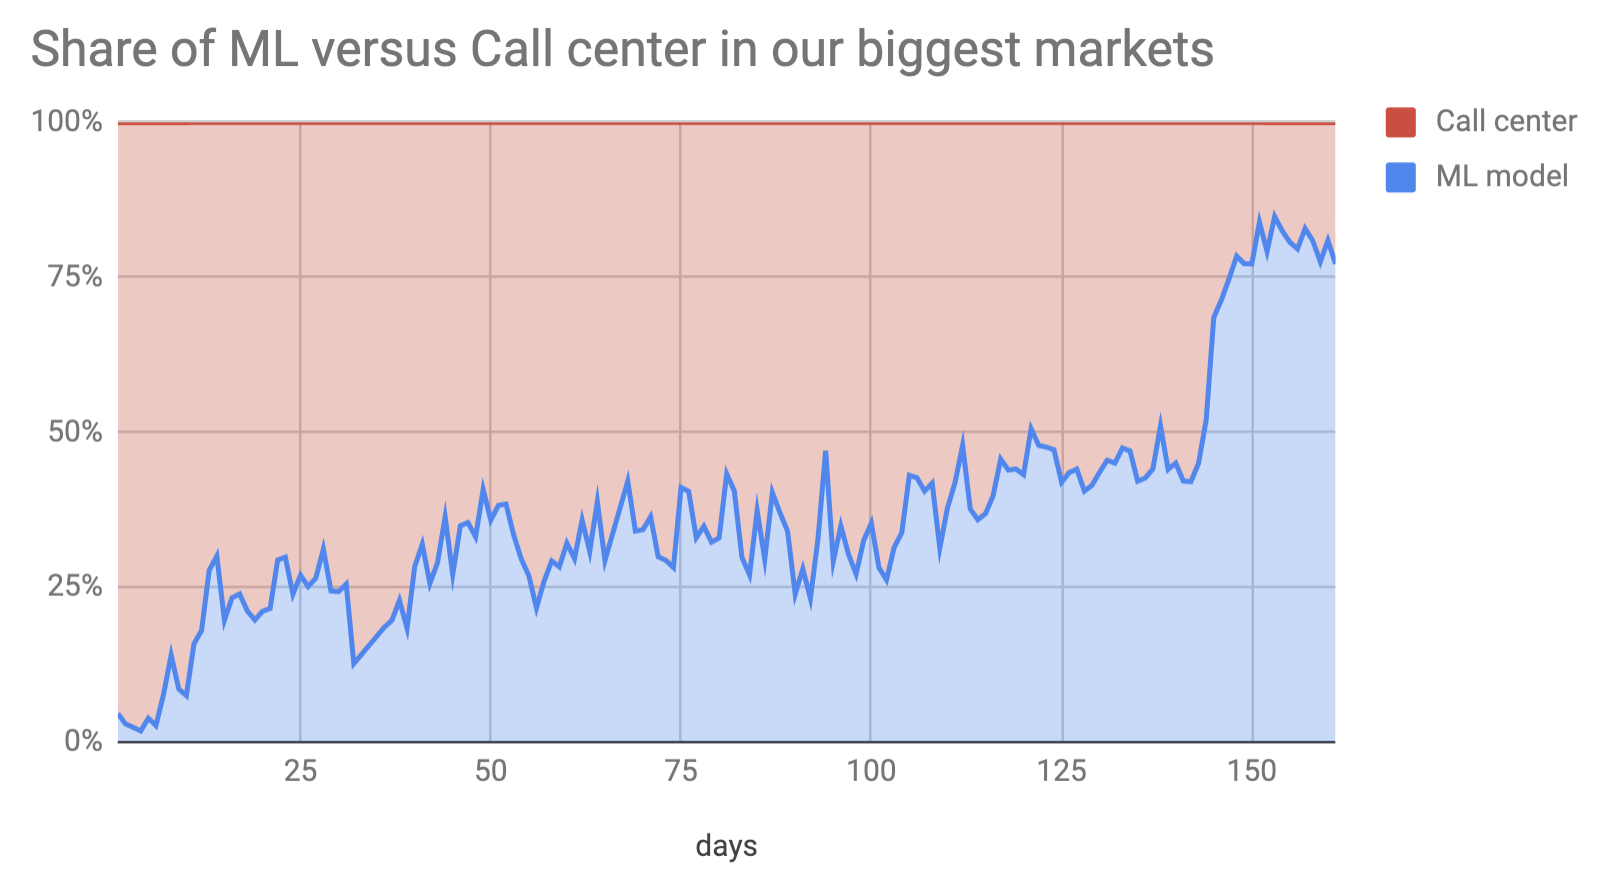 Share of ML scheduled versus Call center scheduled deliveries